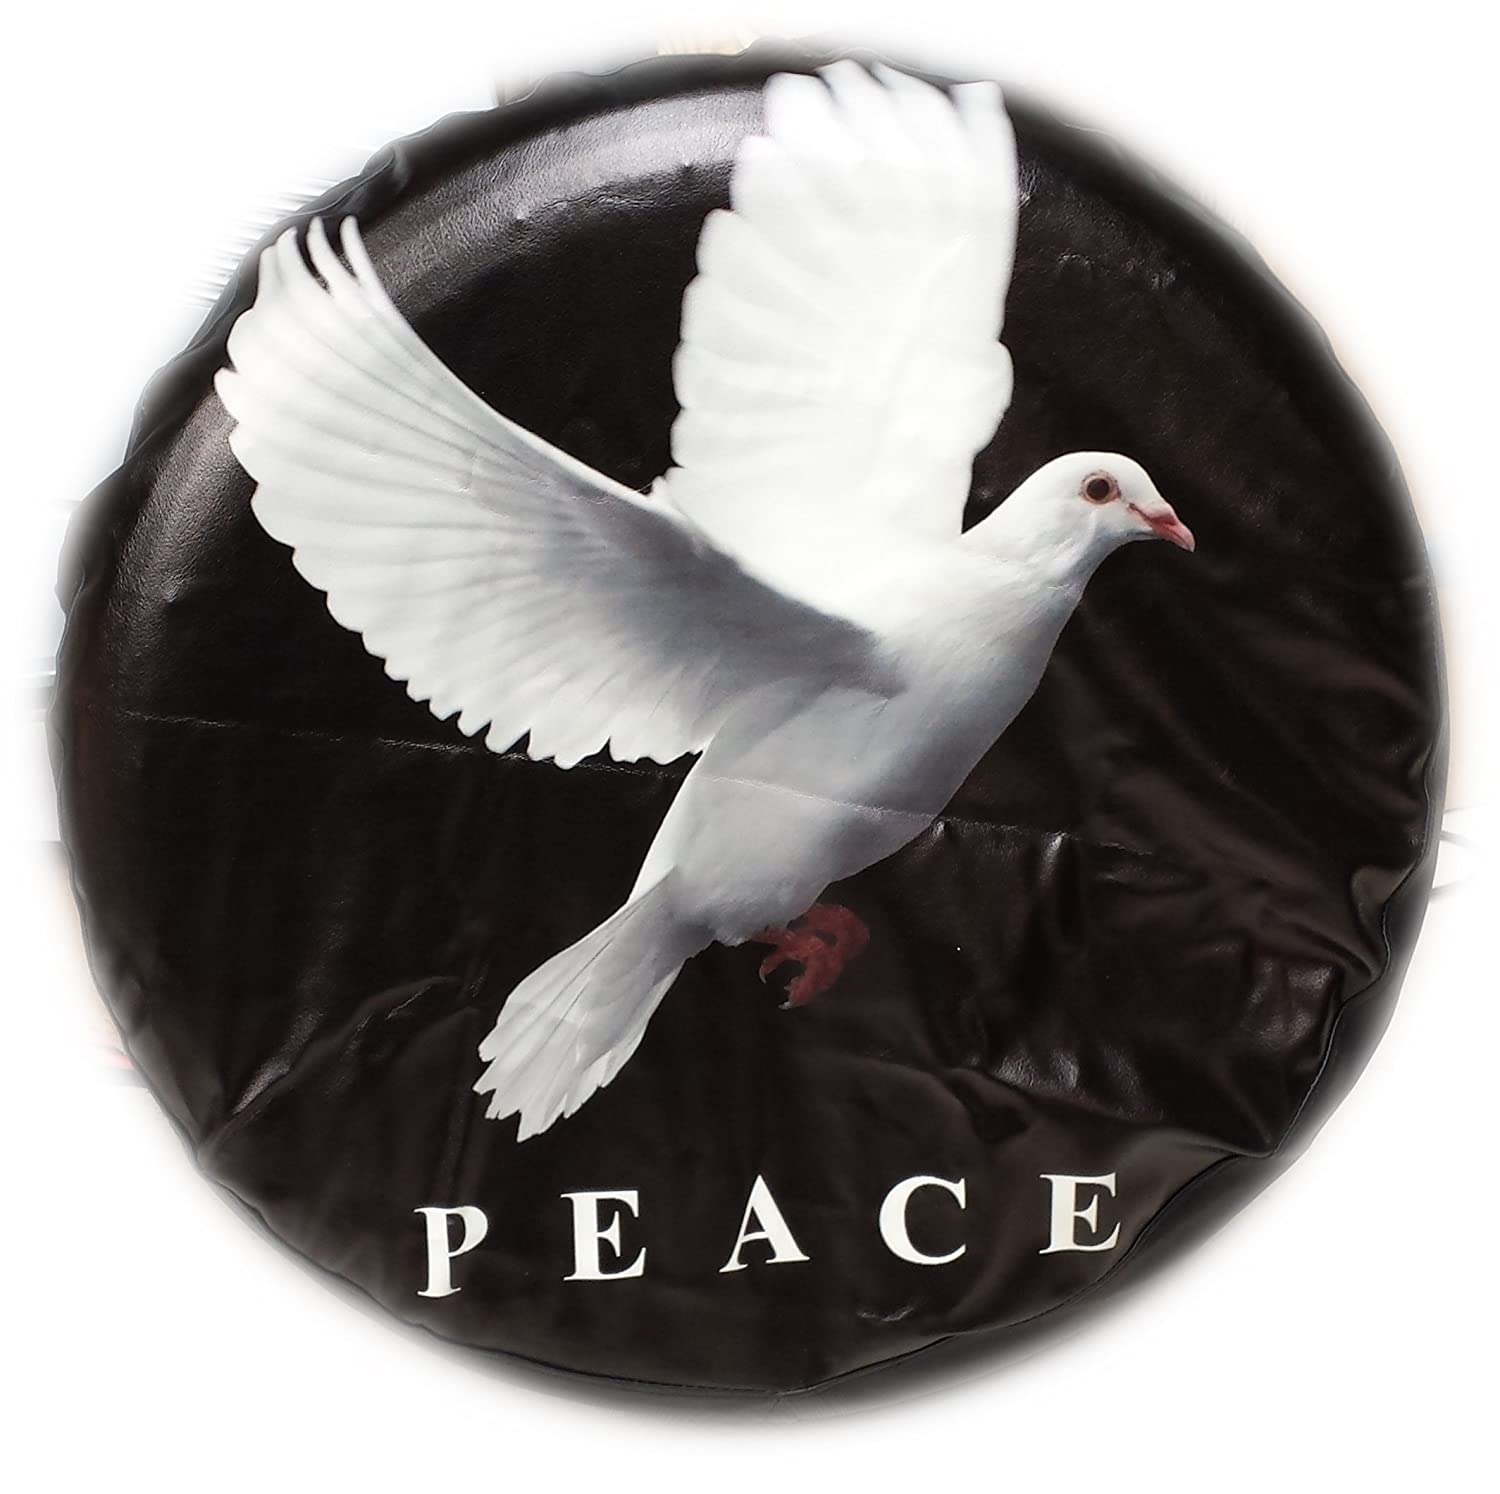 4x4 PEACE wheel cover rear spare tyre wheelcover black soft, quality CRV LET US KNOW YOUR SIZE! BargainworldUK